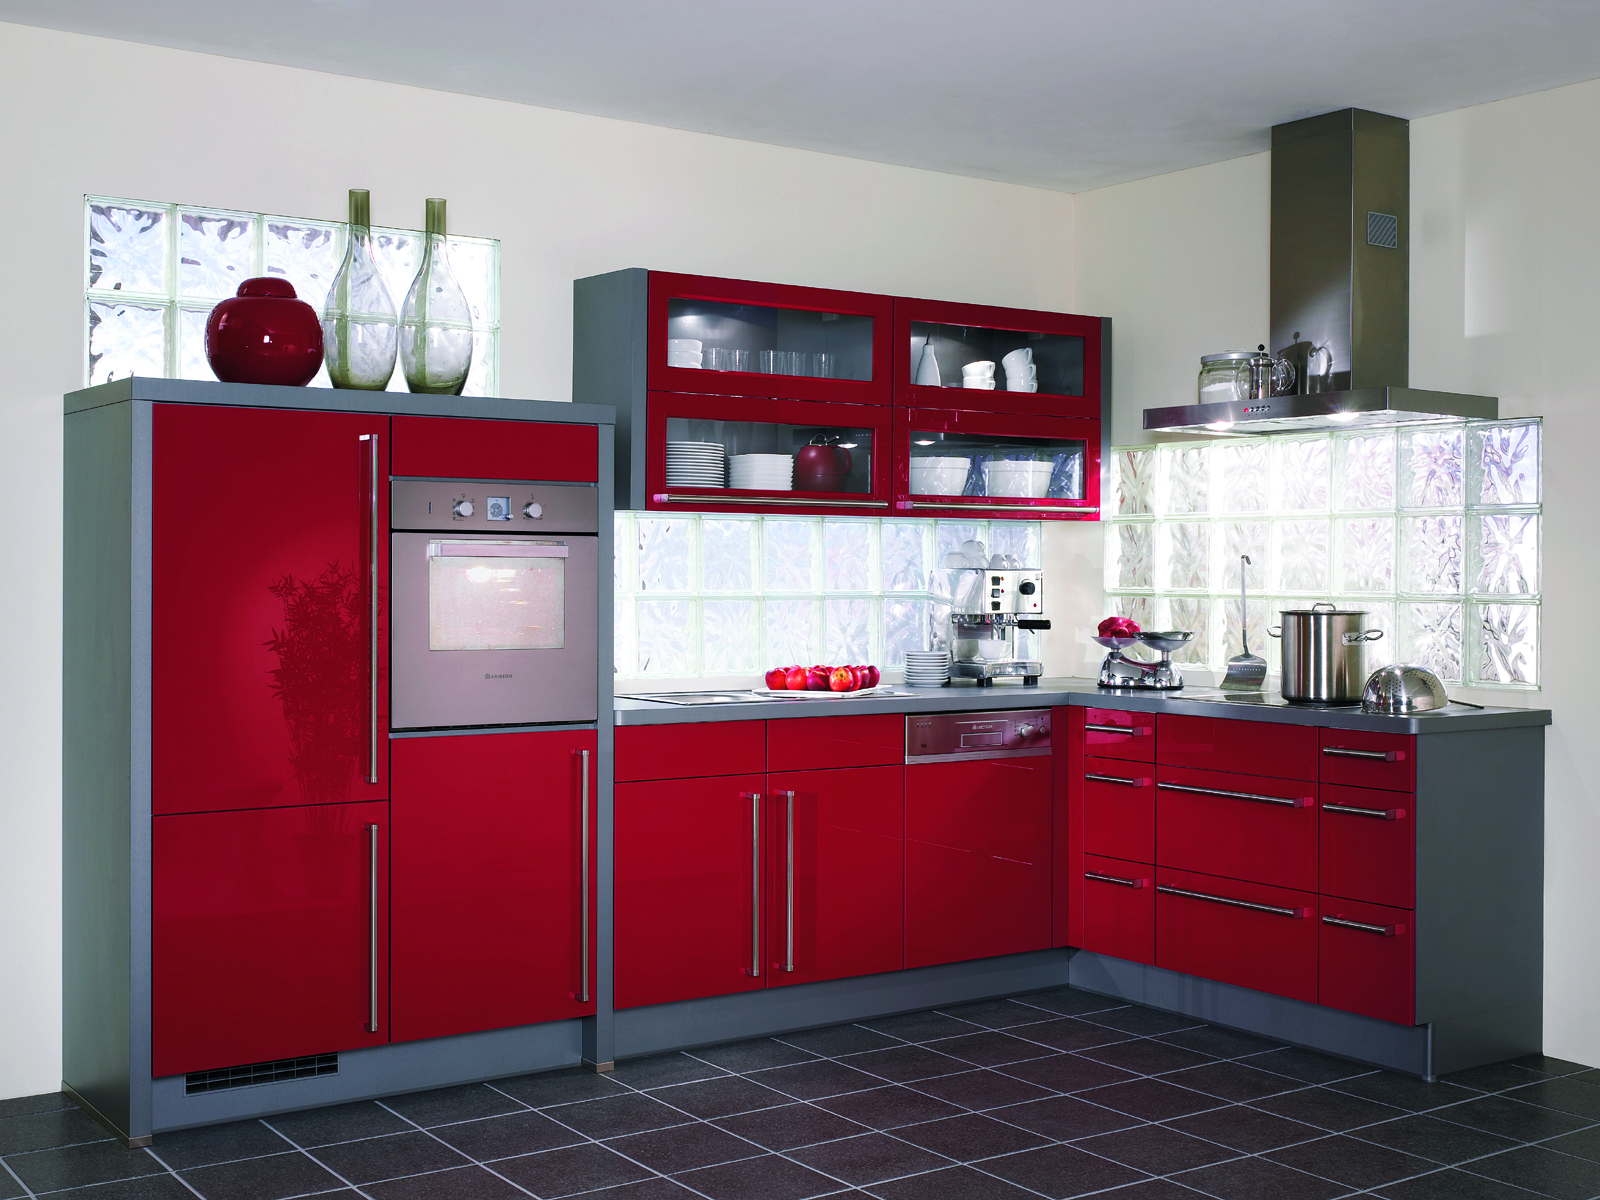 interior-design-kitchen-red-painted-red-kitchen-ideas-red-kitchen-ideas-kitchen-picture-red-kitchen-ideas